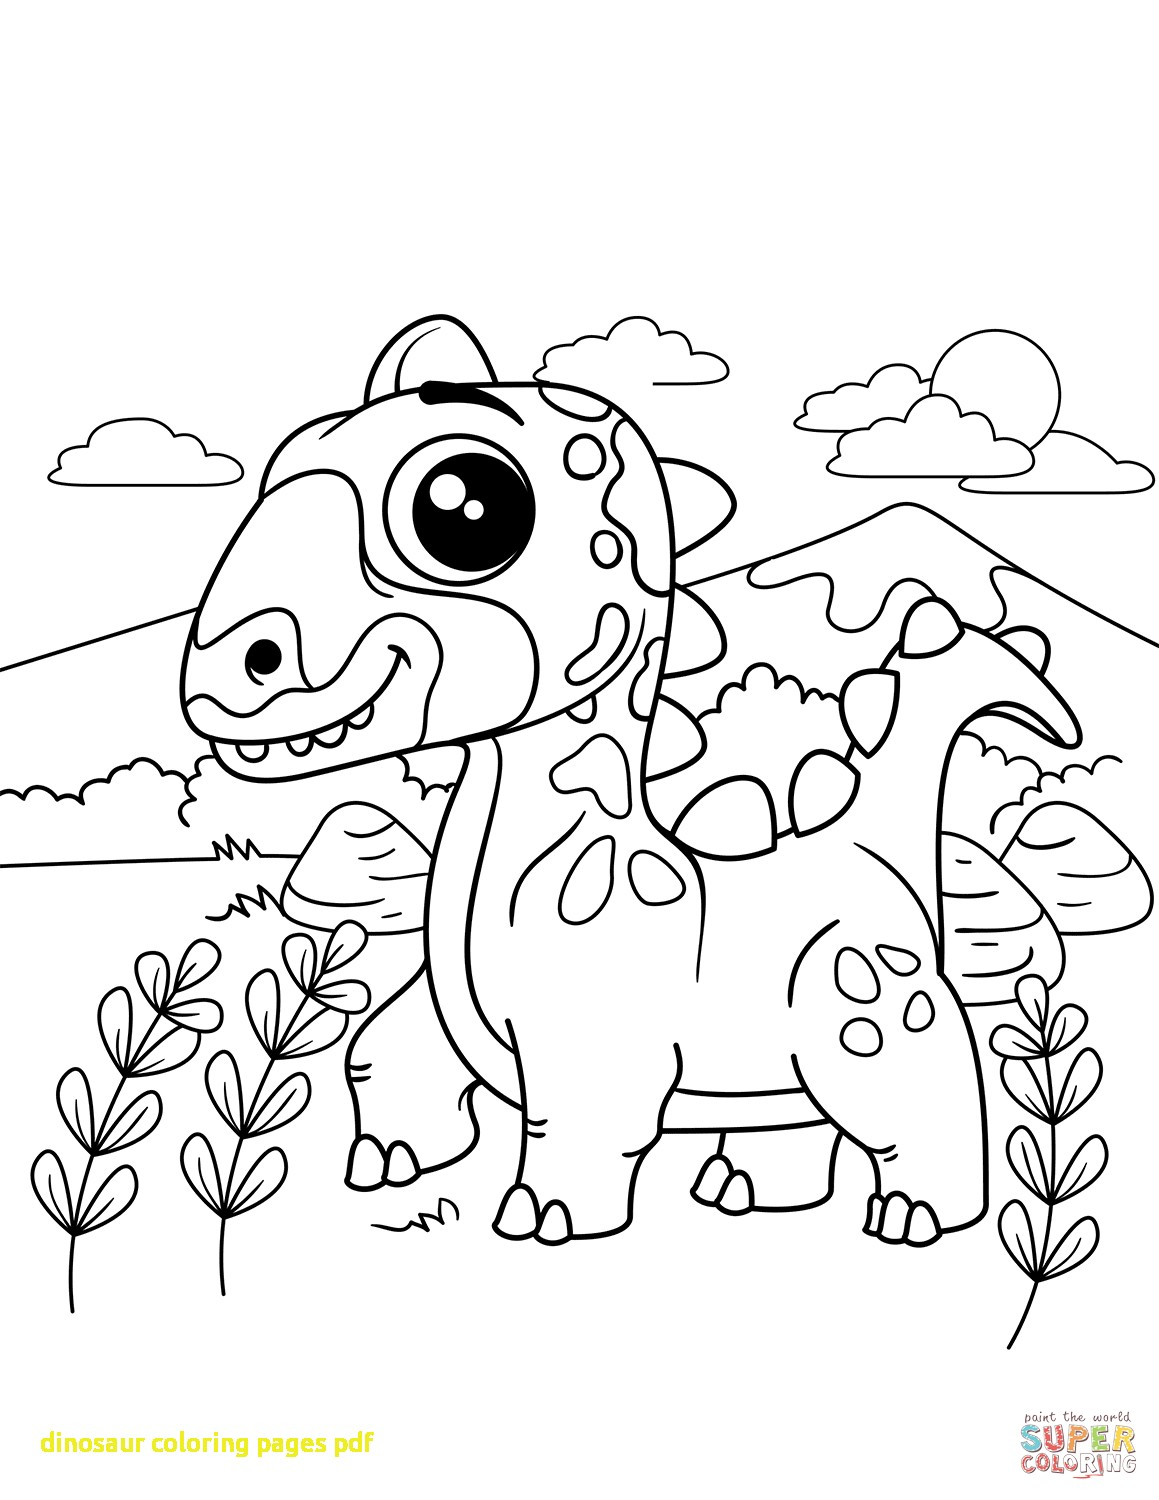 Dinosaur Coloring Pages At Getcolorings